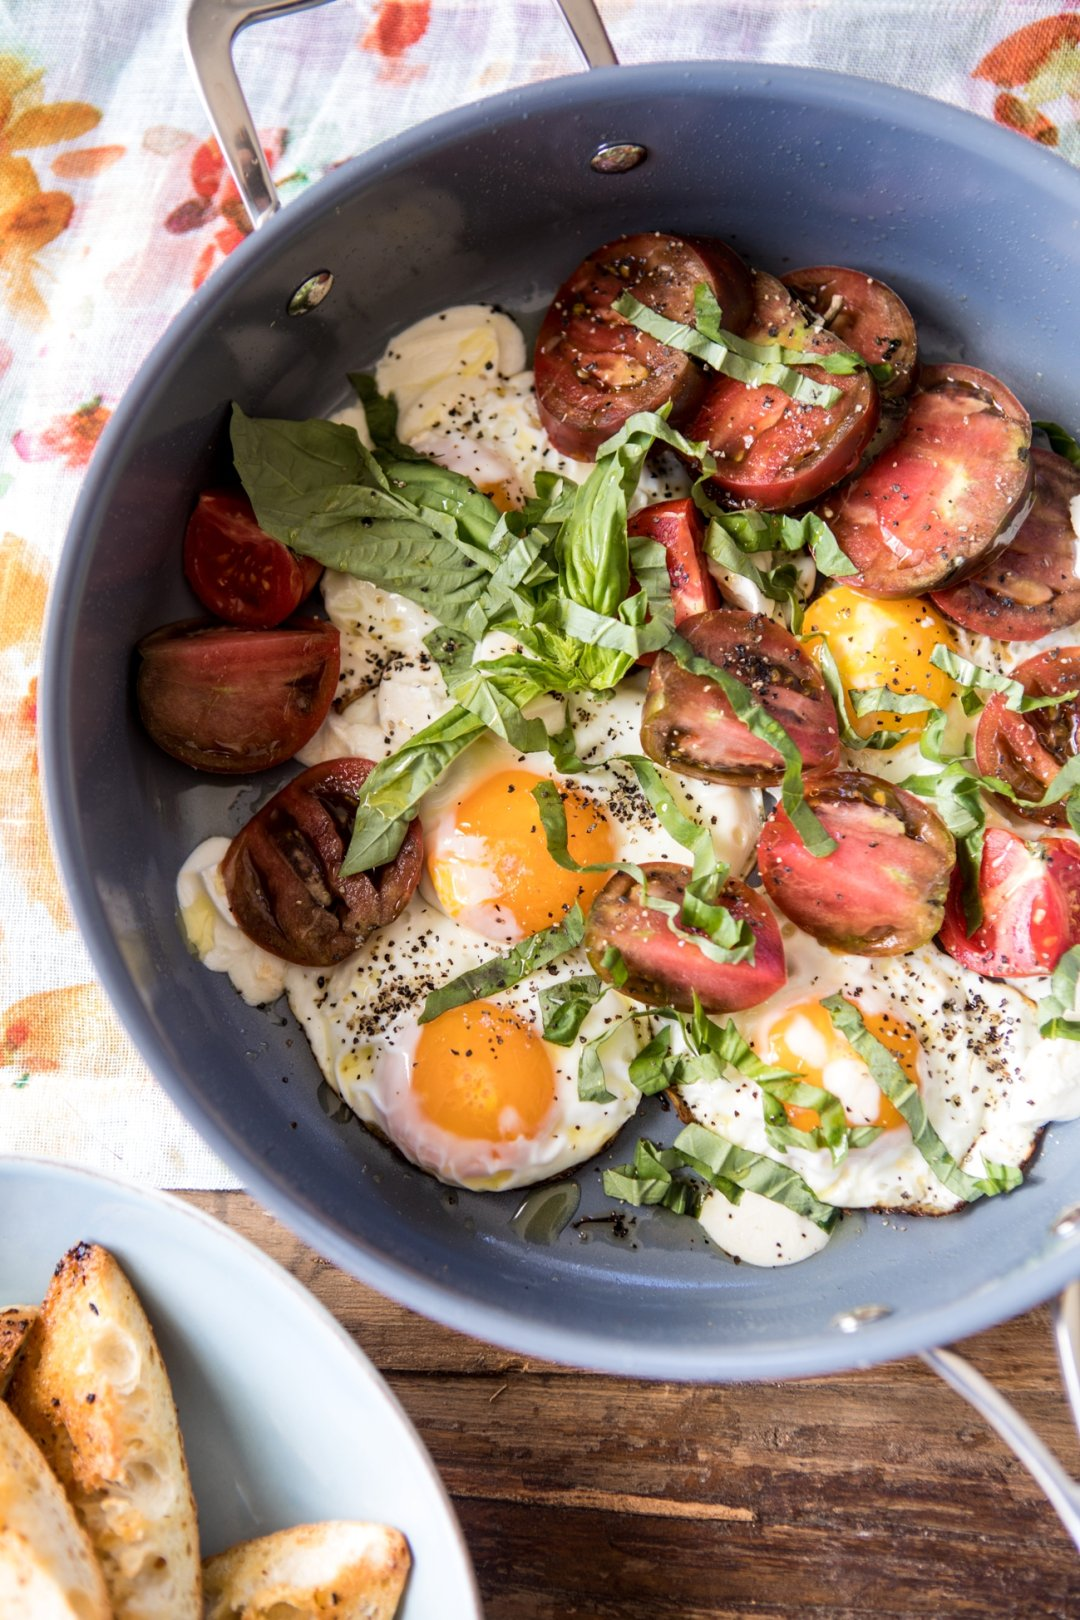 Pan with eggs and tomatoes and green herbs